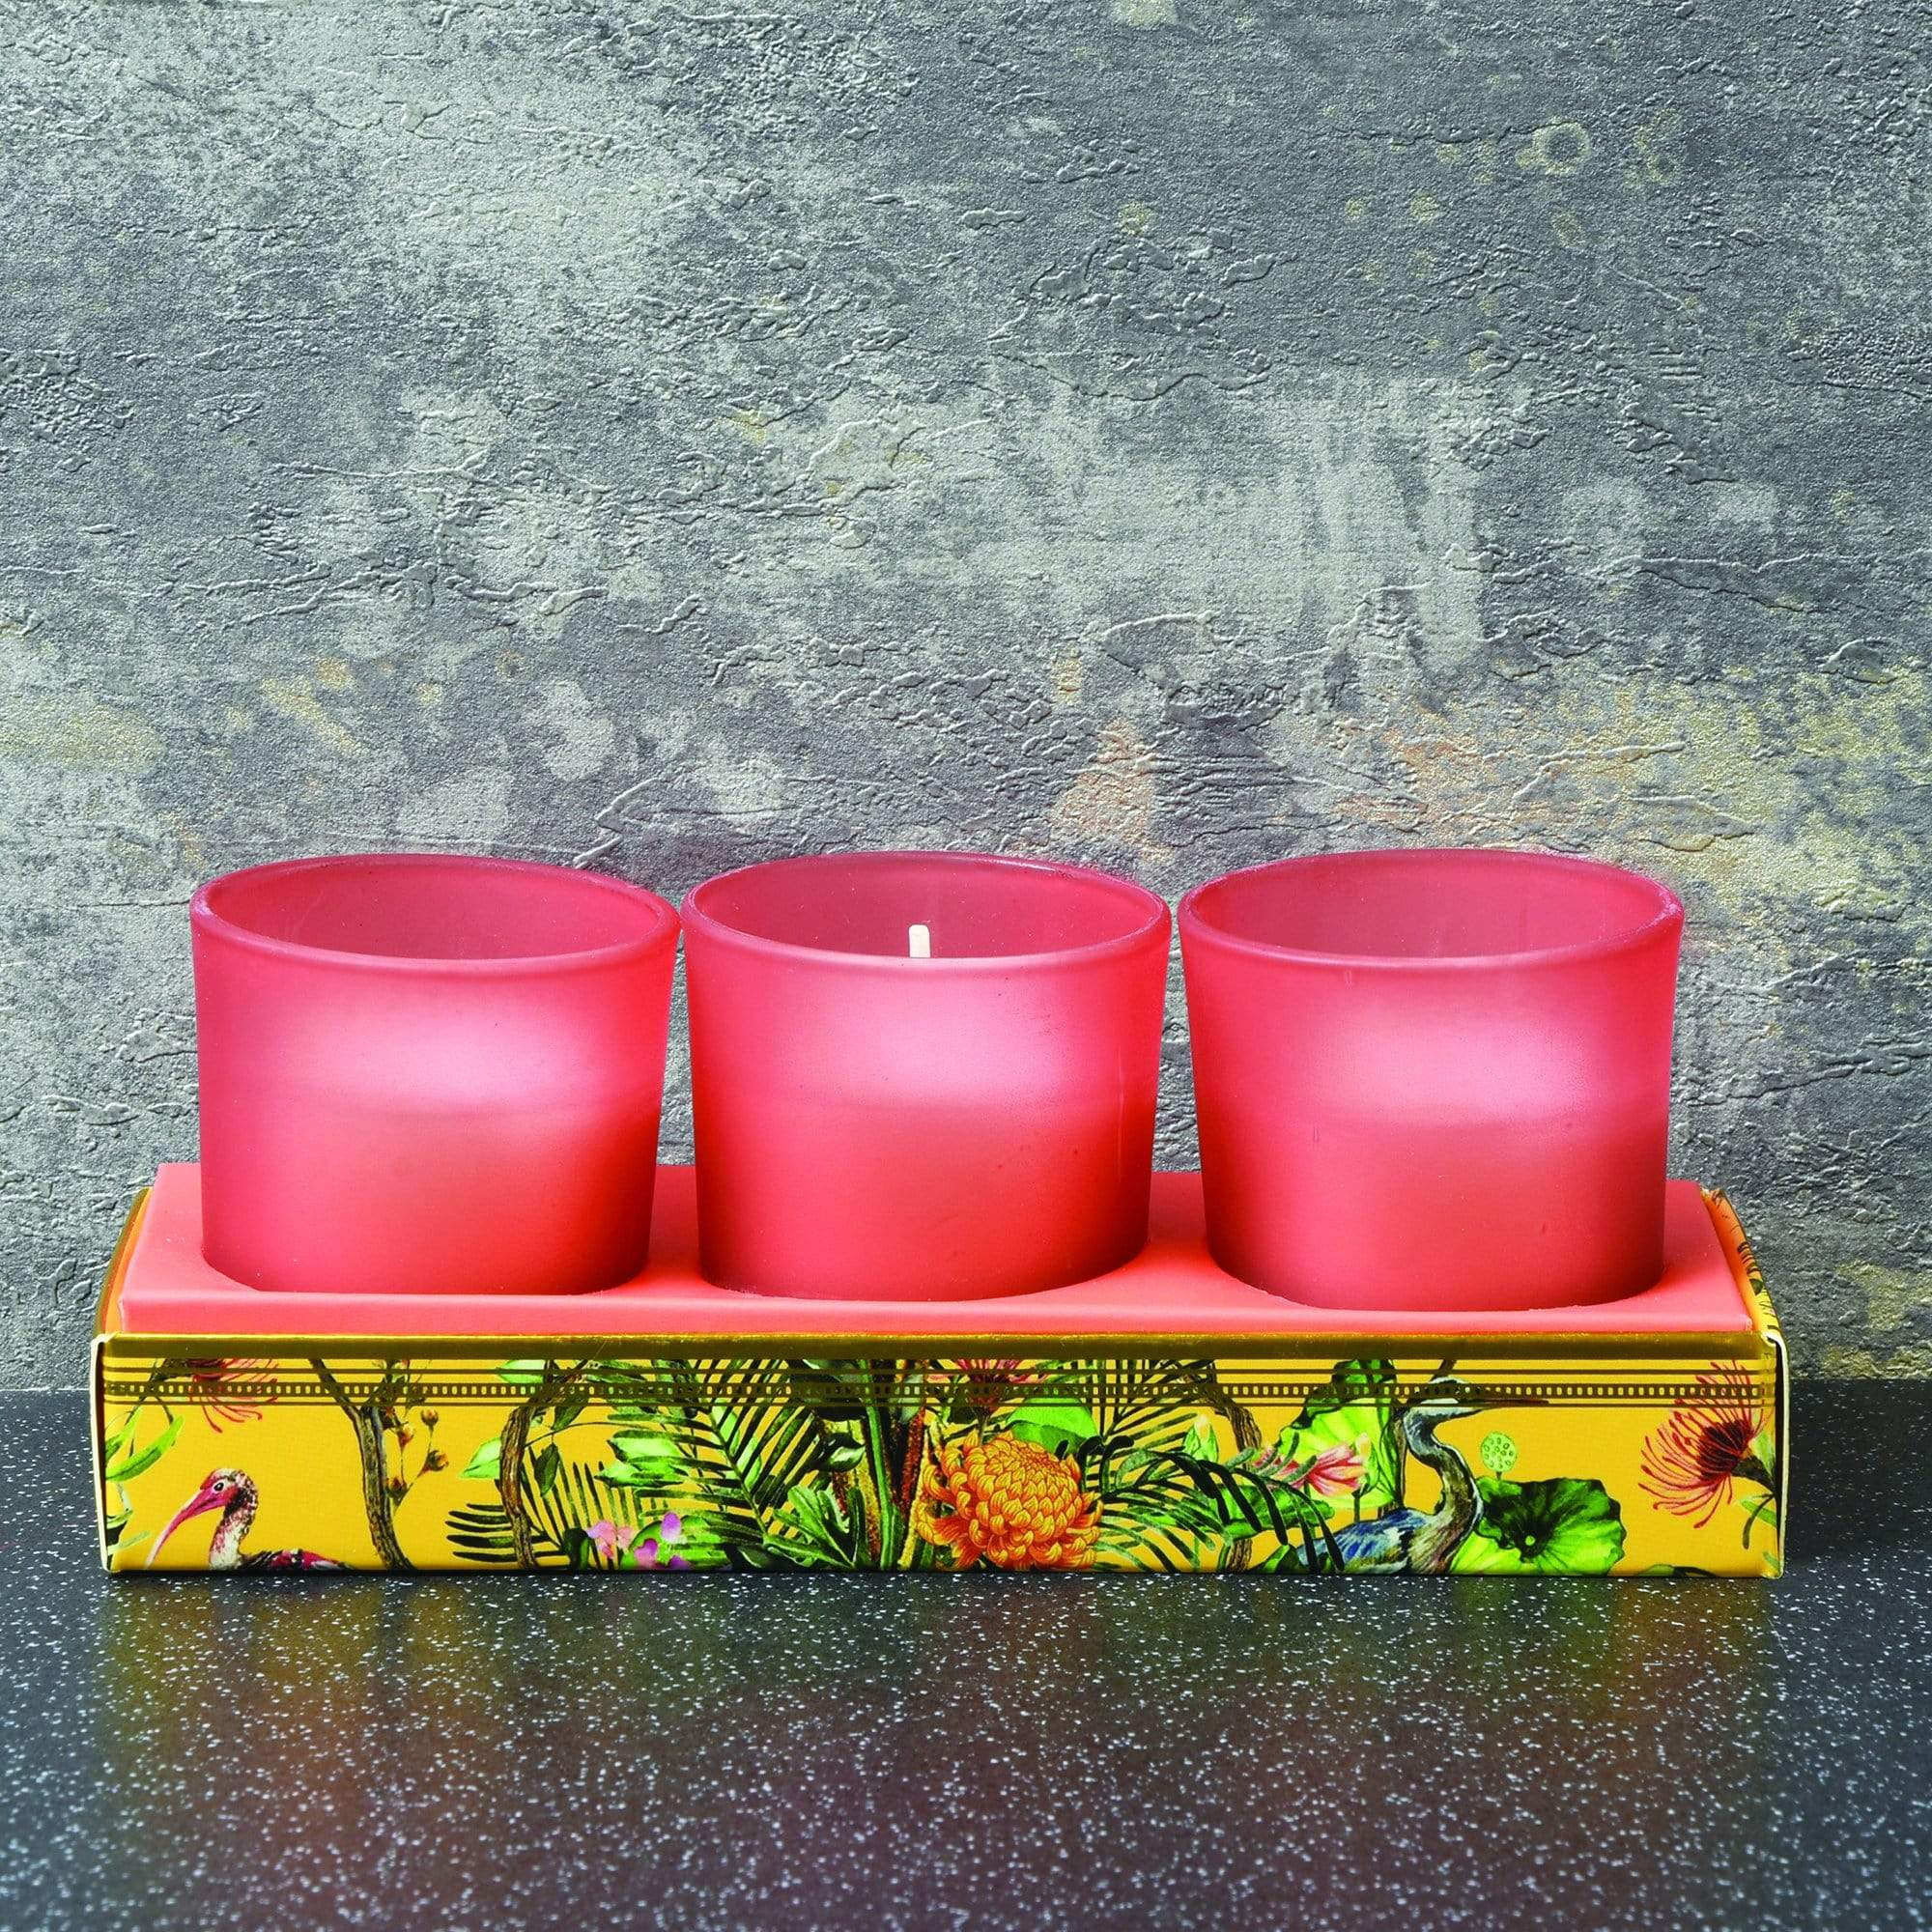 Candlelight Home Candle Candlelight Chinoiserie Set of 3 Wax Filled Candle Pots Oriental Lily Scent 50g 6PK